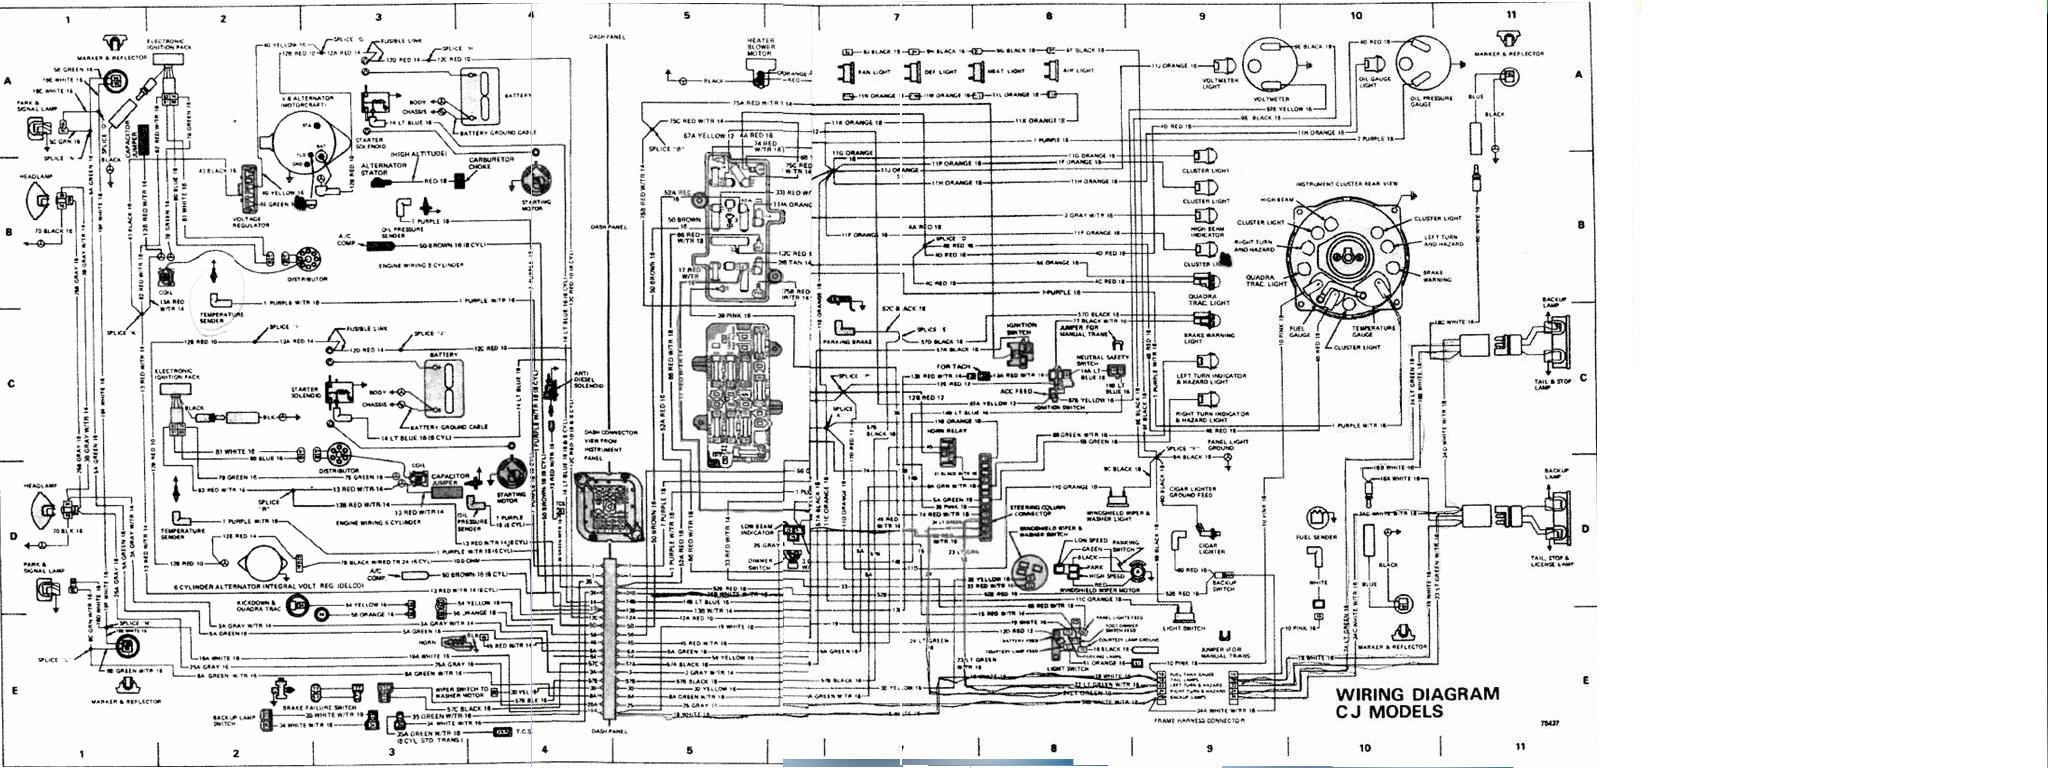 Cj7 Wire Harness | Wiring Diagram - Painless Wiring Harness Diagram